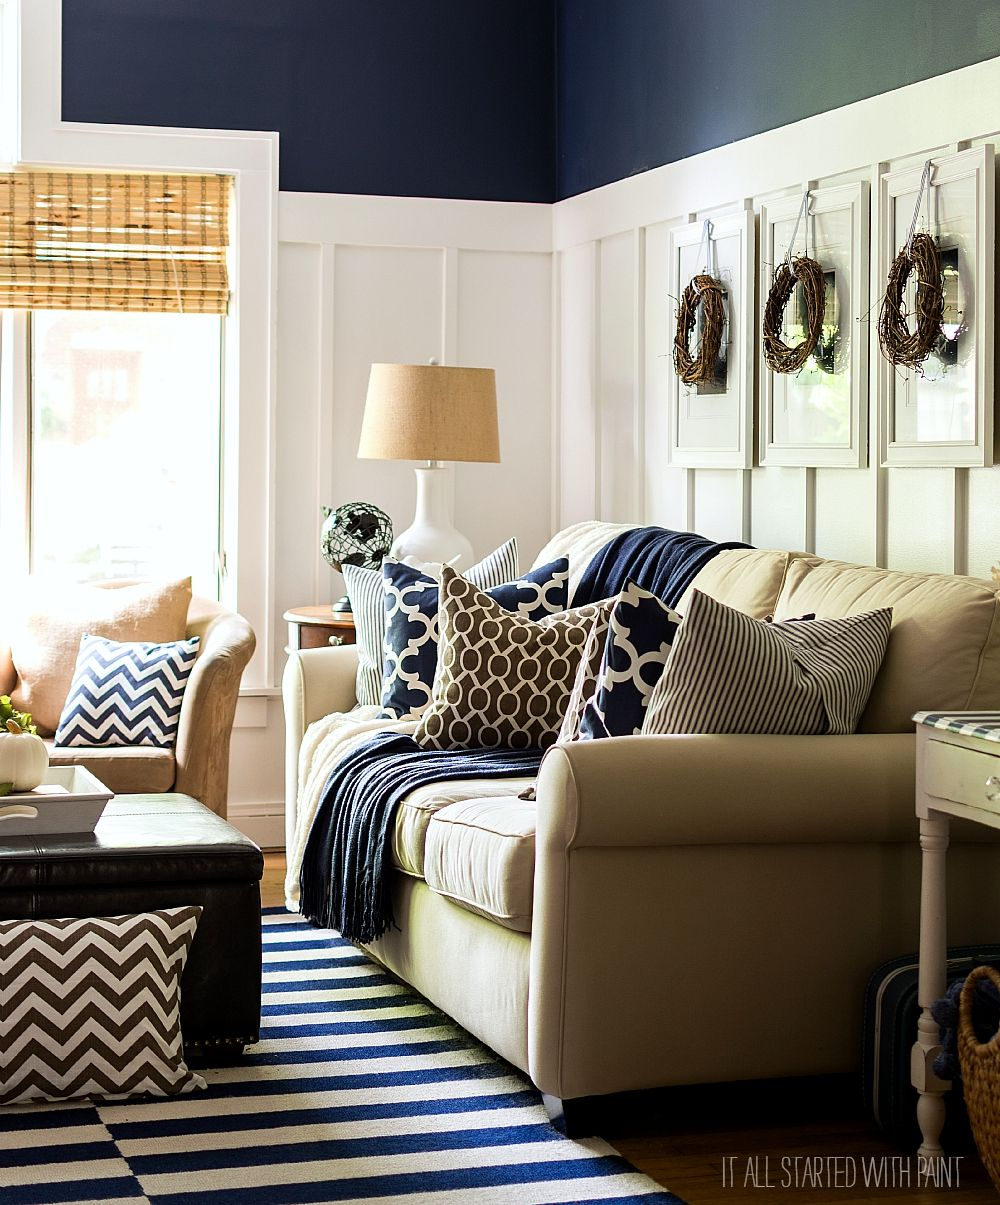 Fall Decor In Navy And Blue Favorite Finds Living Room Decor